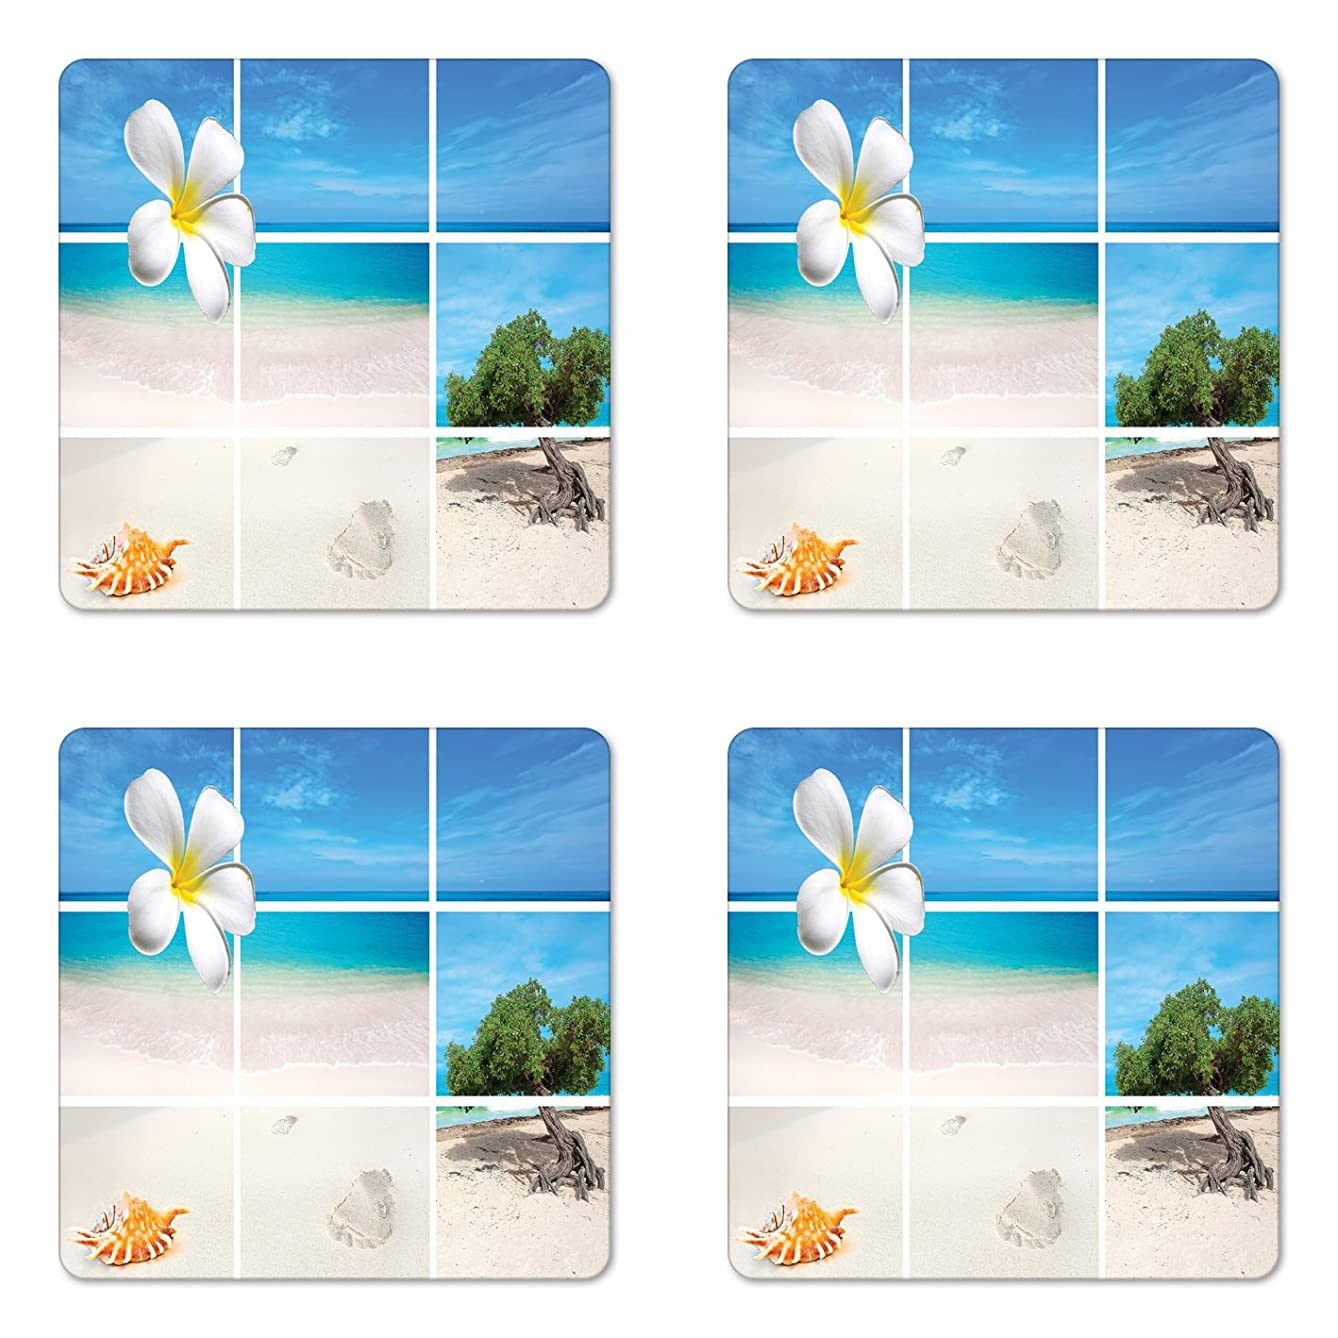 Lunarable Beach Coaster Set of Four, Collection of Seaside Pictures from The Caribbean Island Aruba Tree Flower Seashell, Square Hardboard Gloss Coasters for Drinks, Beige Blue